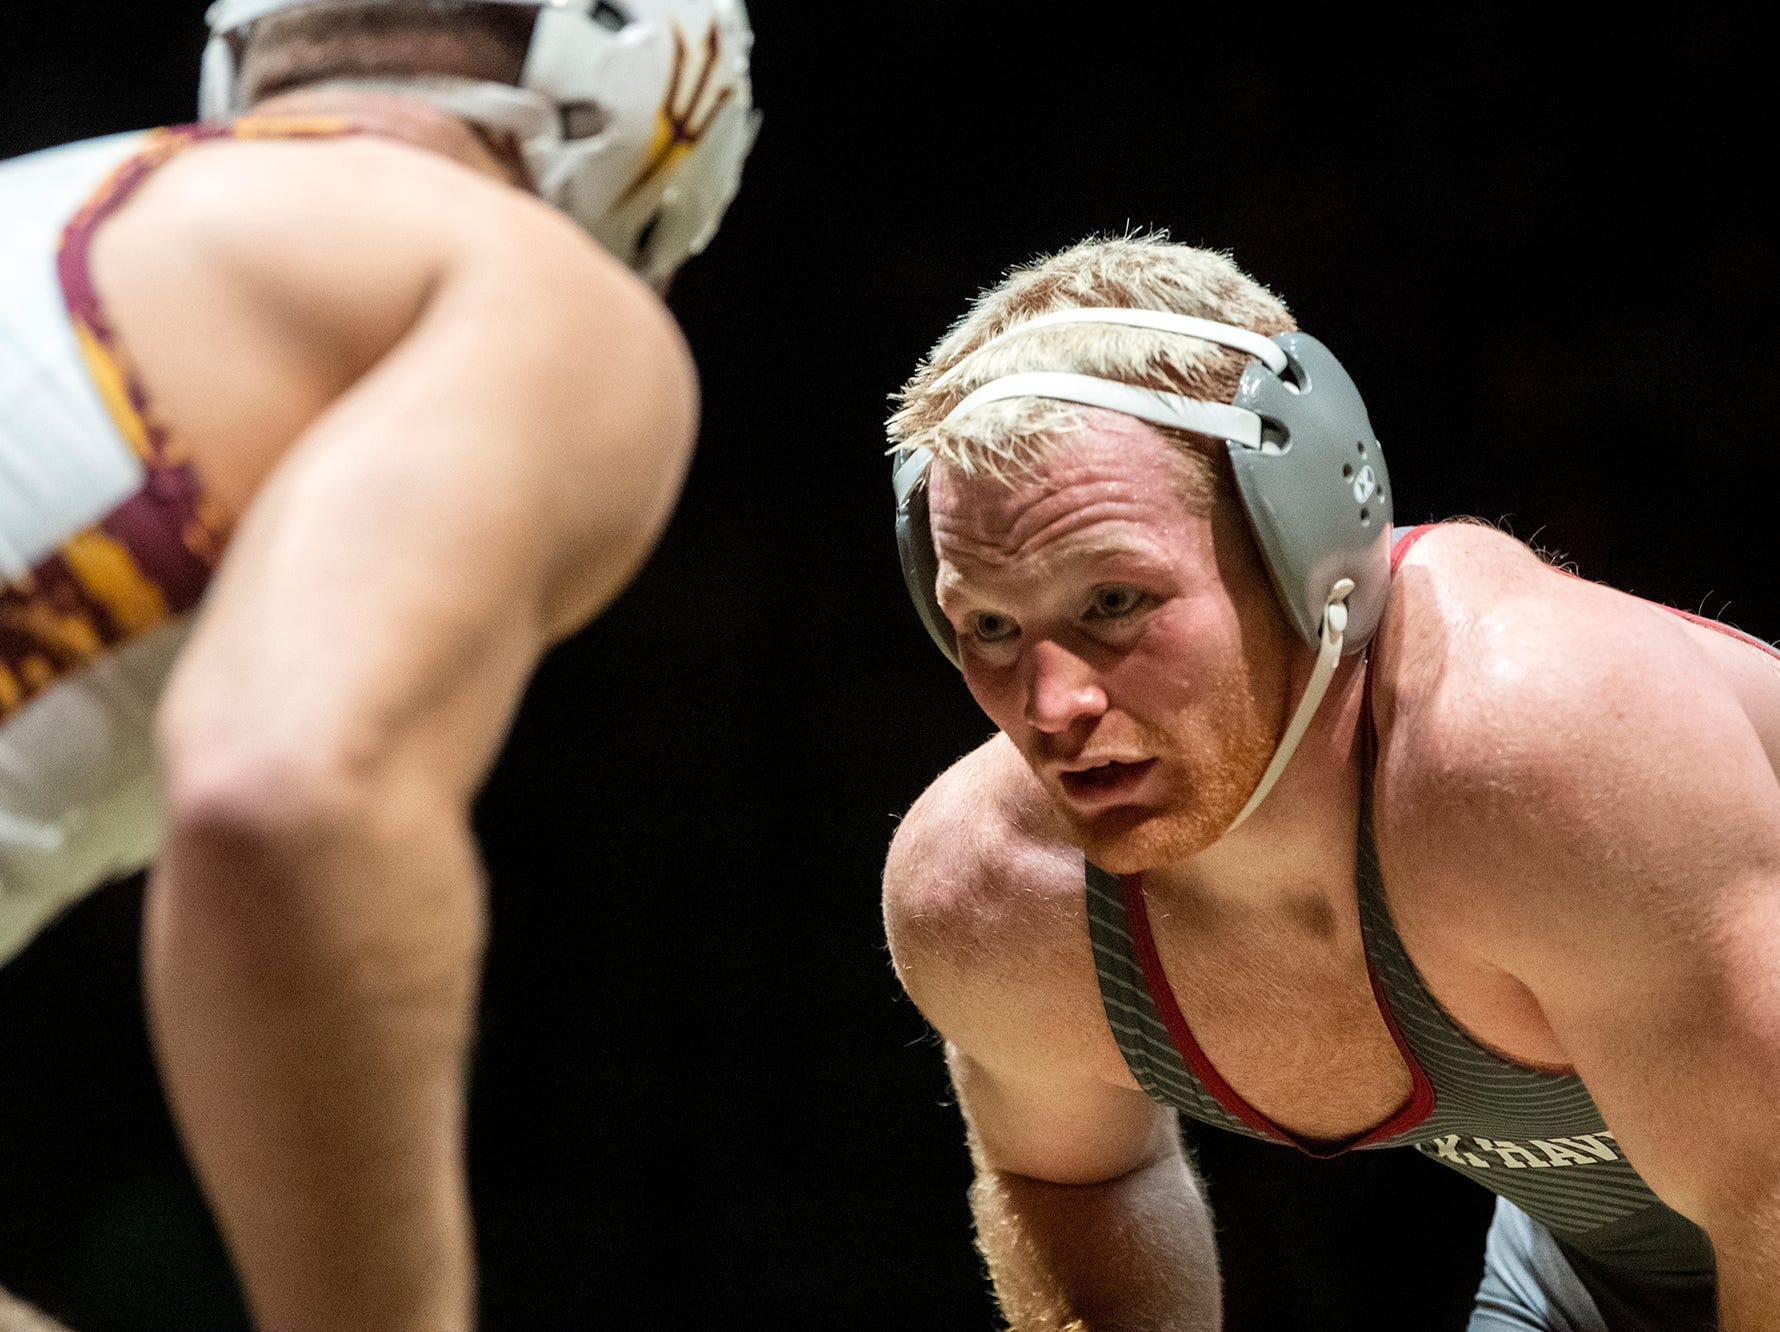 Lock Haven's Chance Marsteller, right, eyes up Arizona State's Josh Shields during the 165-pound bout at Red Lion's Fitzkee Athletic Center on Friday, Jan. 25, 2019. Shields (No. 5) beat Marsteller (No. 4), 2-1, in a tiebreaker. No. 22 Lock Haven upset No. 12 Arizona State, 23-14, in the first ever 'Rumble in the Jungle.'